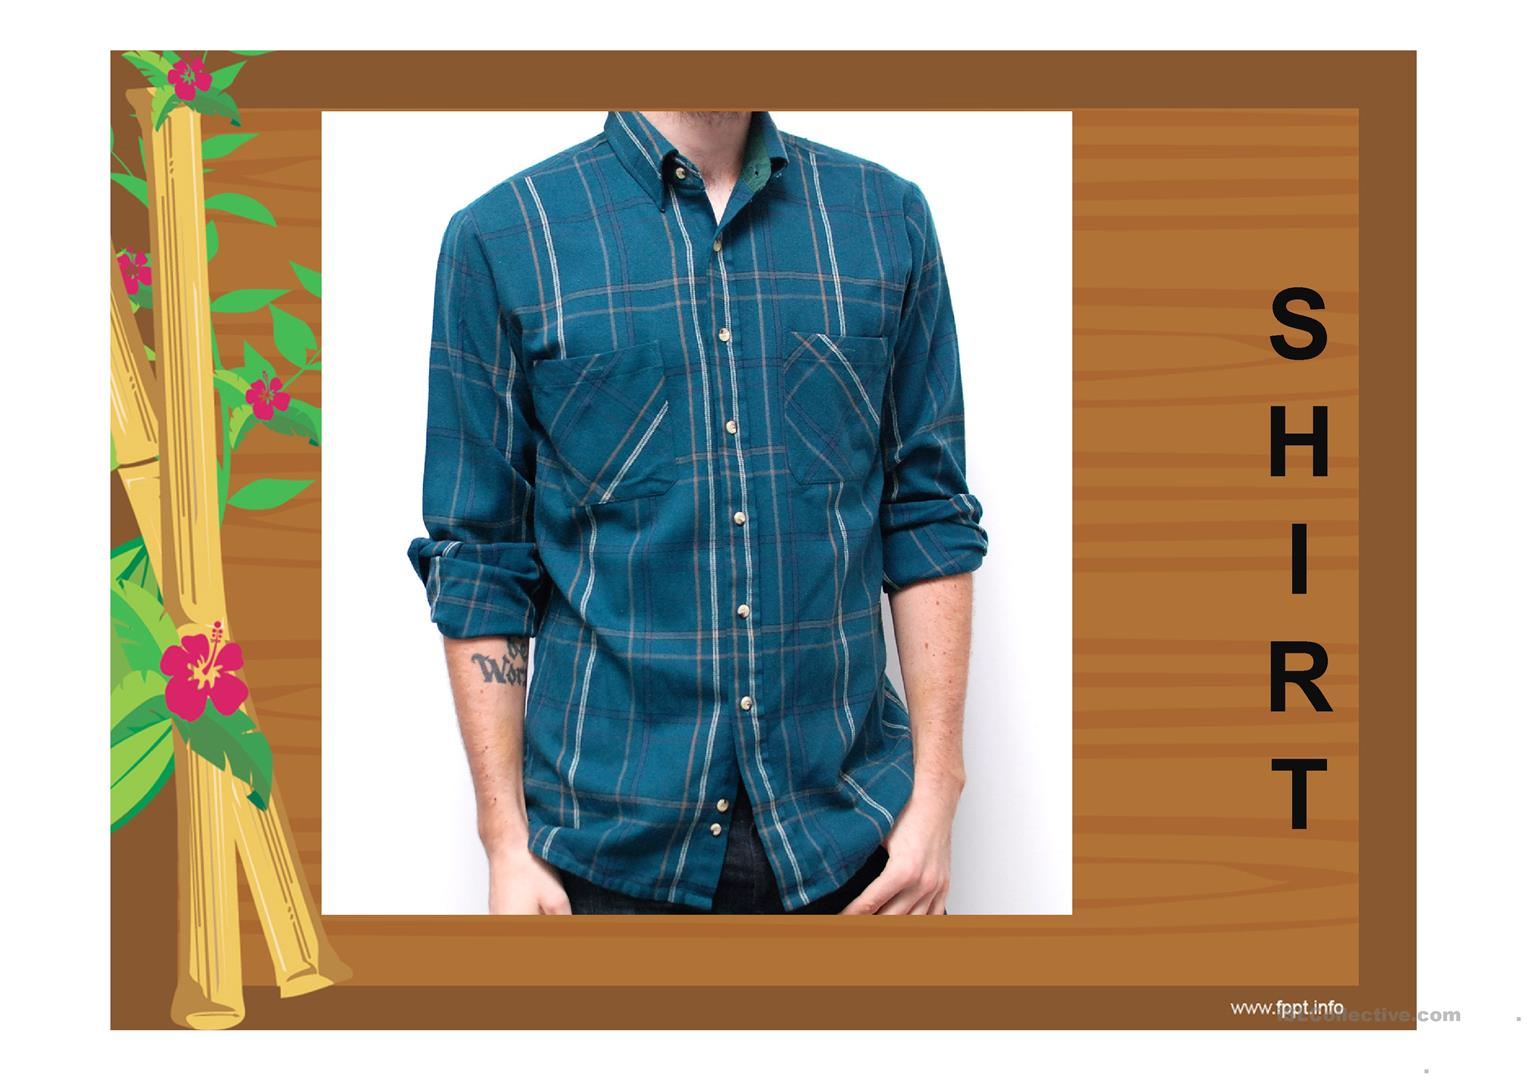 Clothes Guess The Name Worksheet